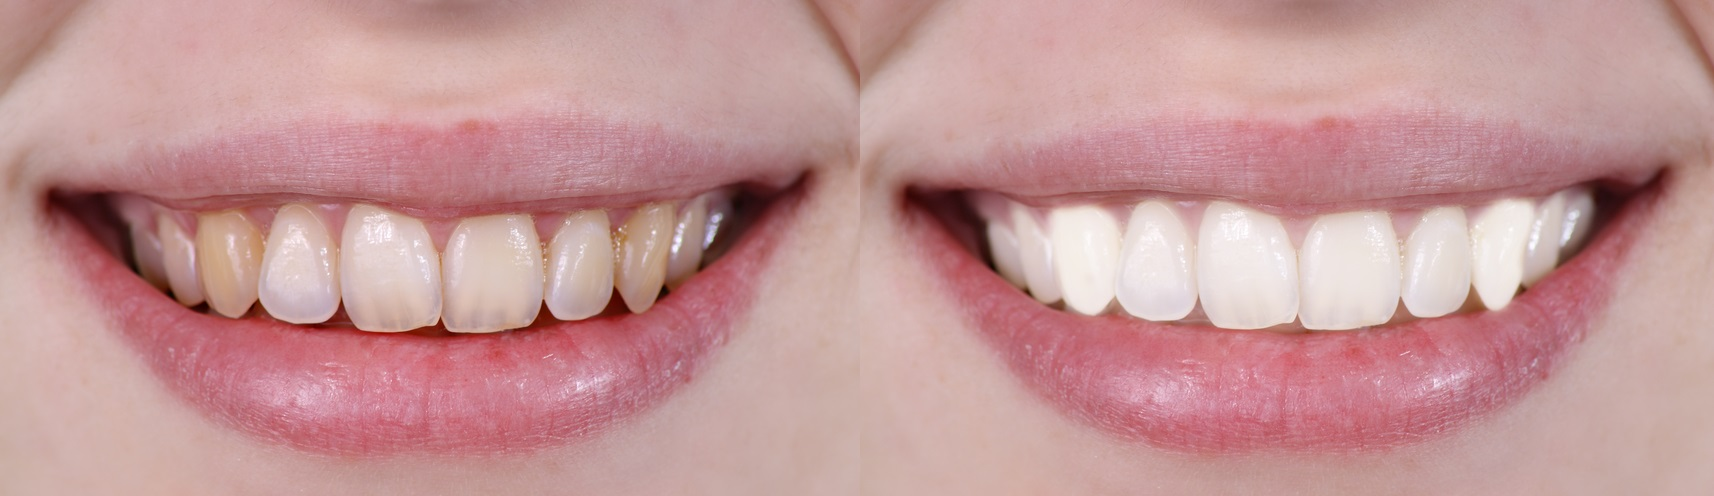 5 Common Mistakes That Can Cause Yellow Teeth - ToothStars